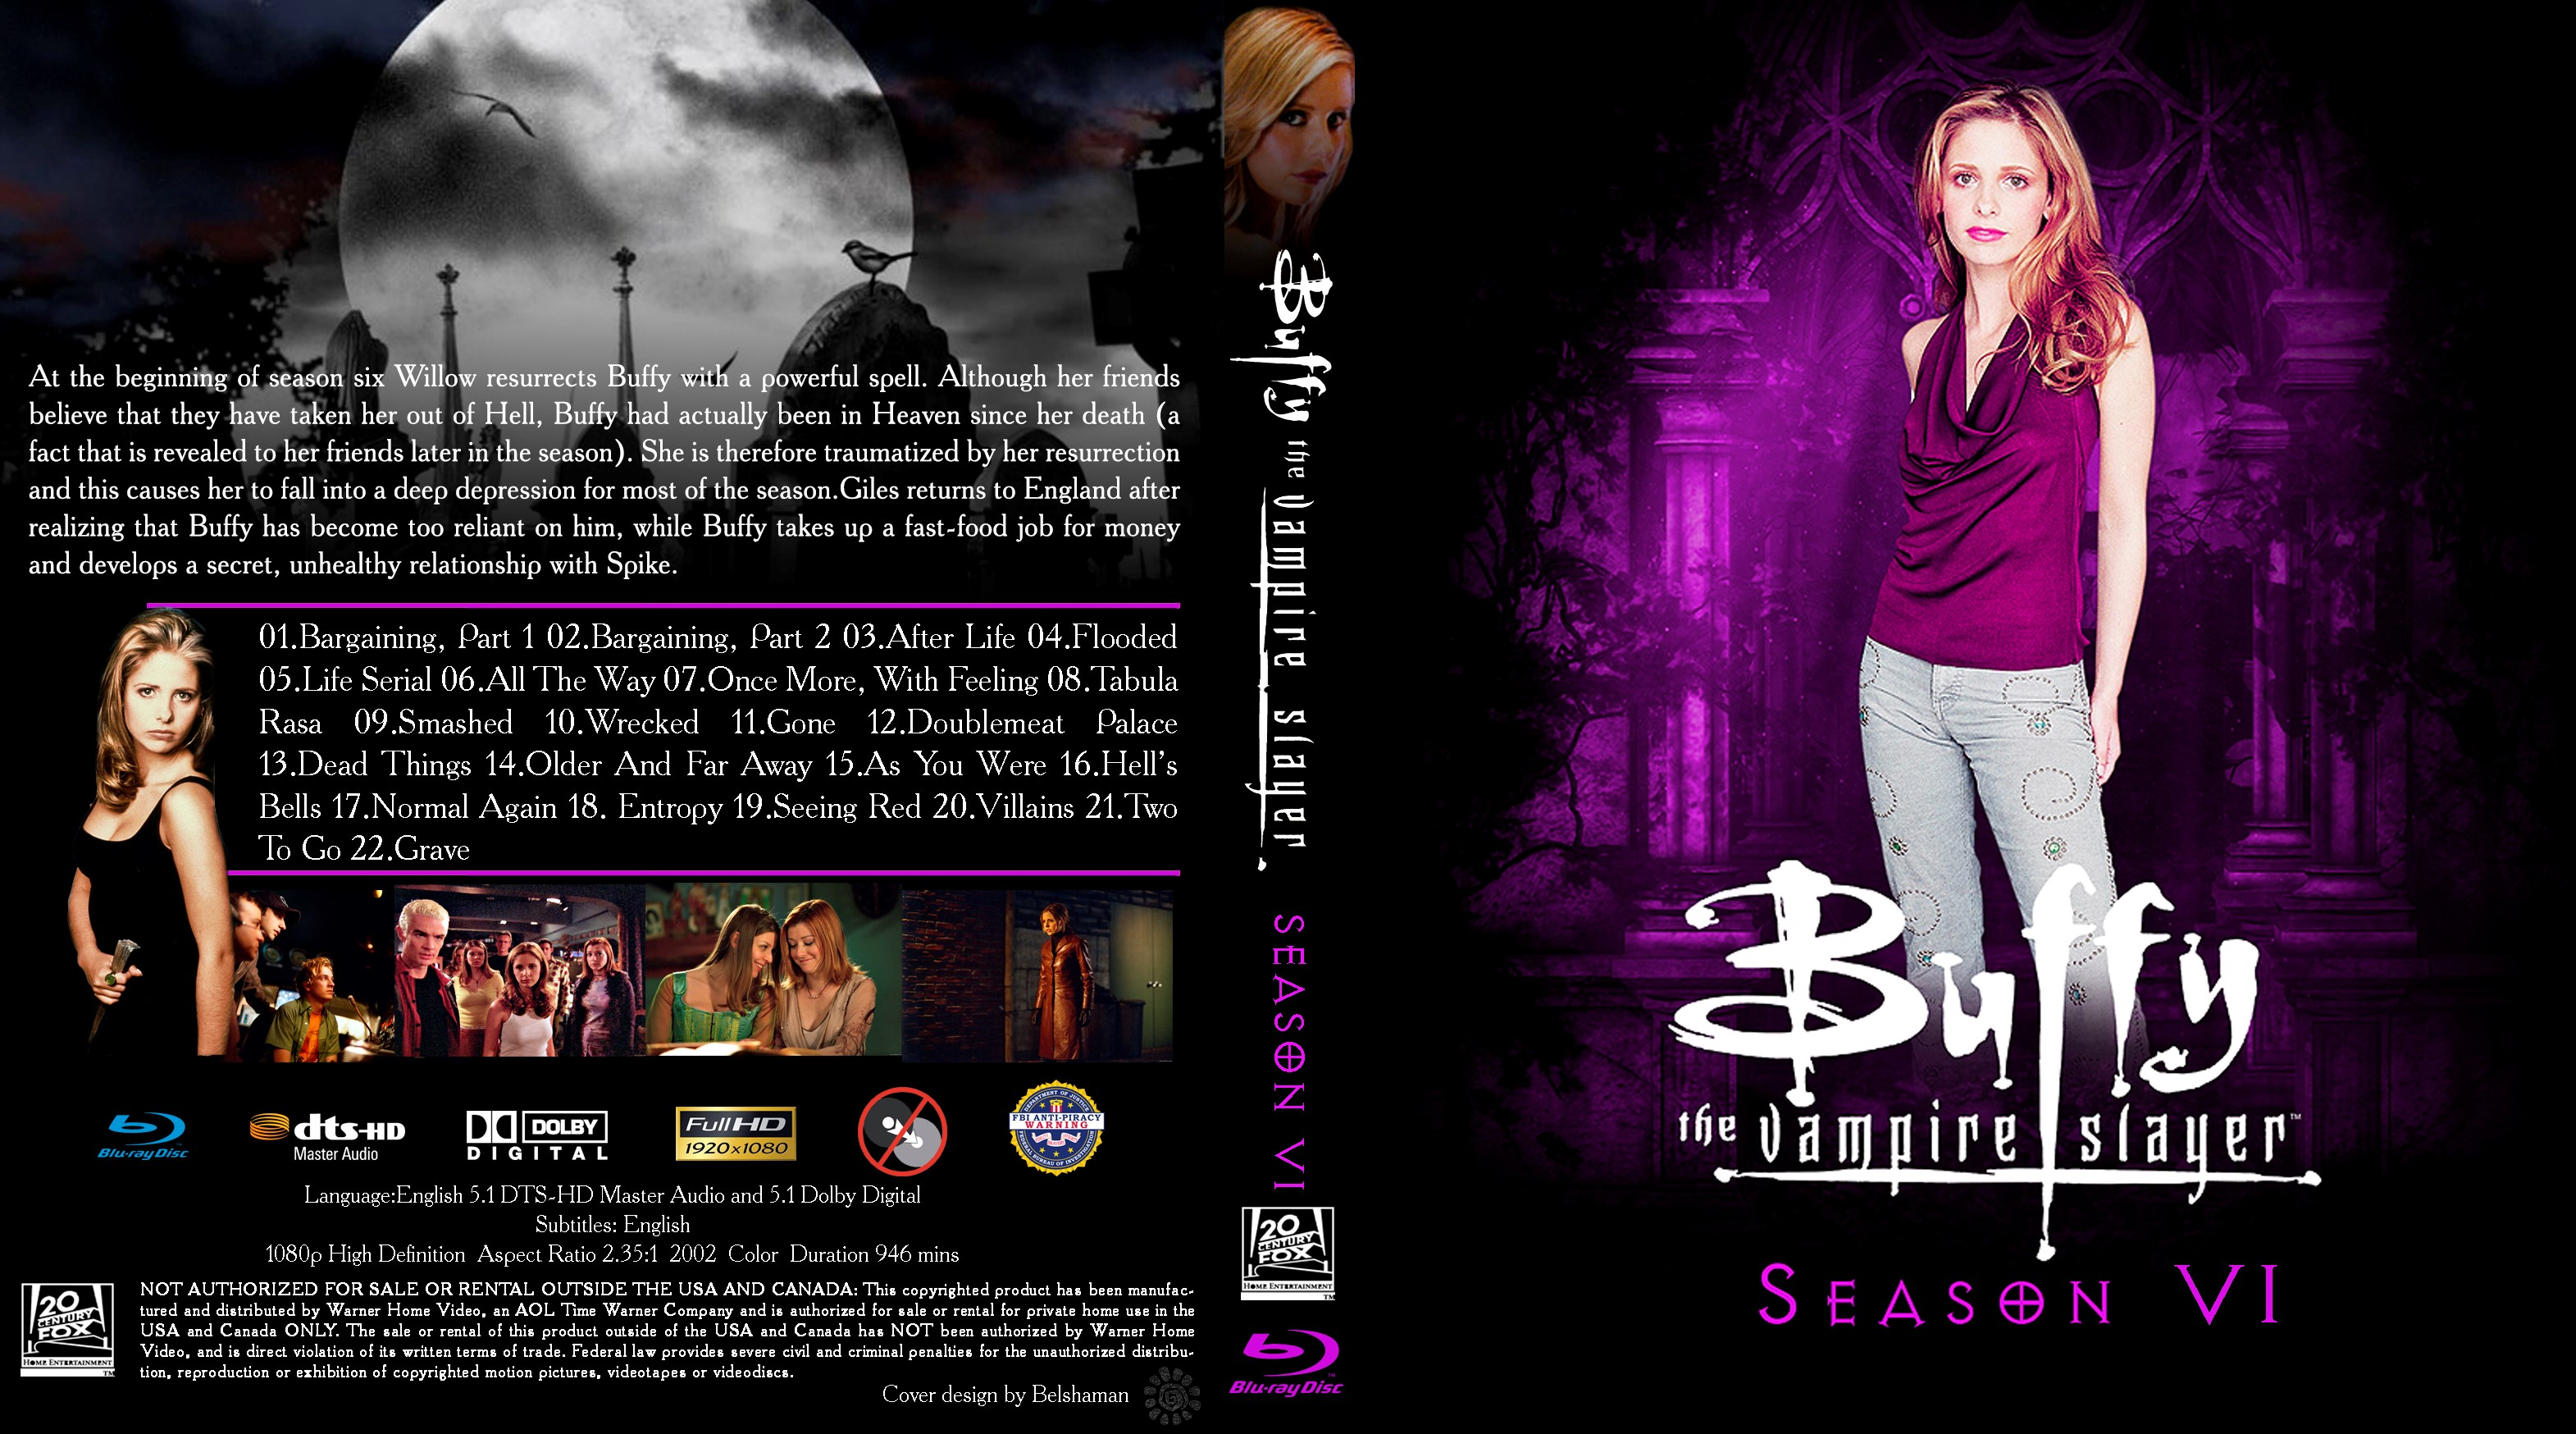 download buffy the vampire slayer season 6